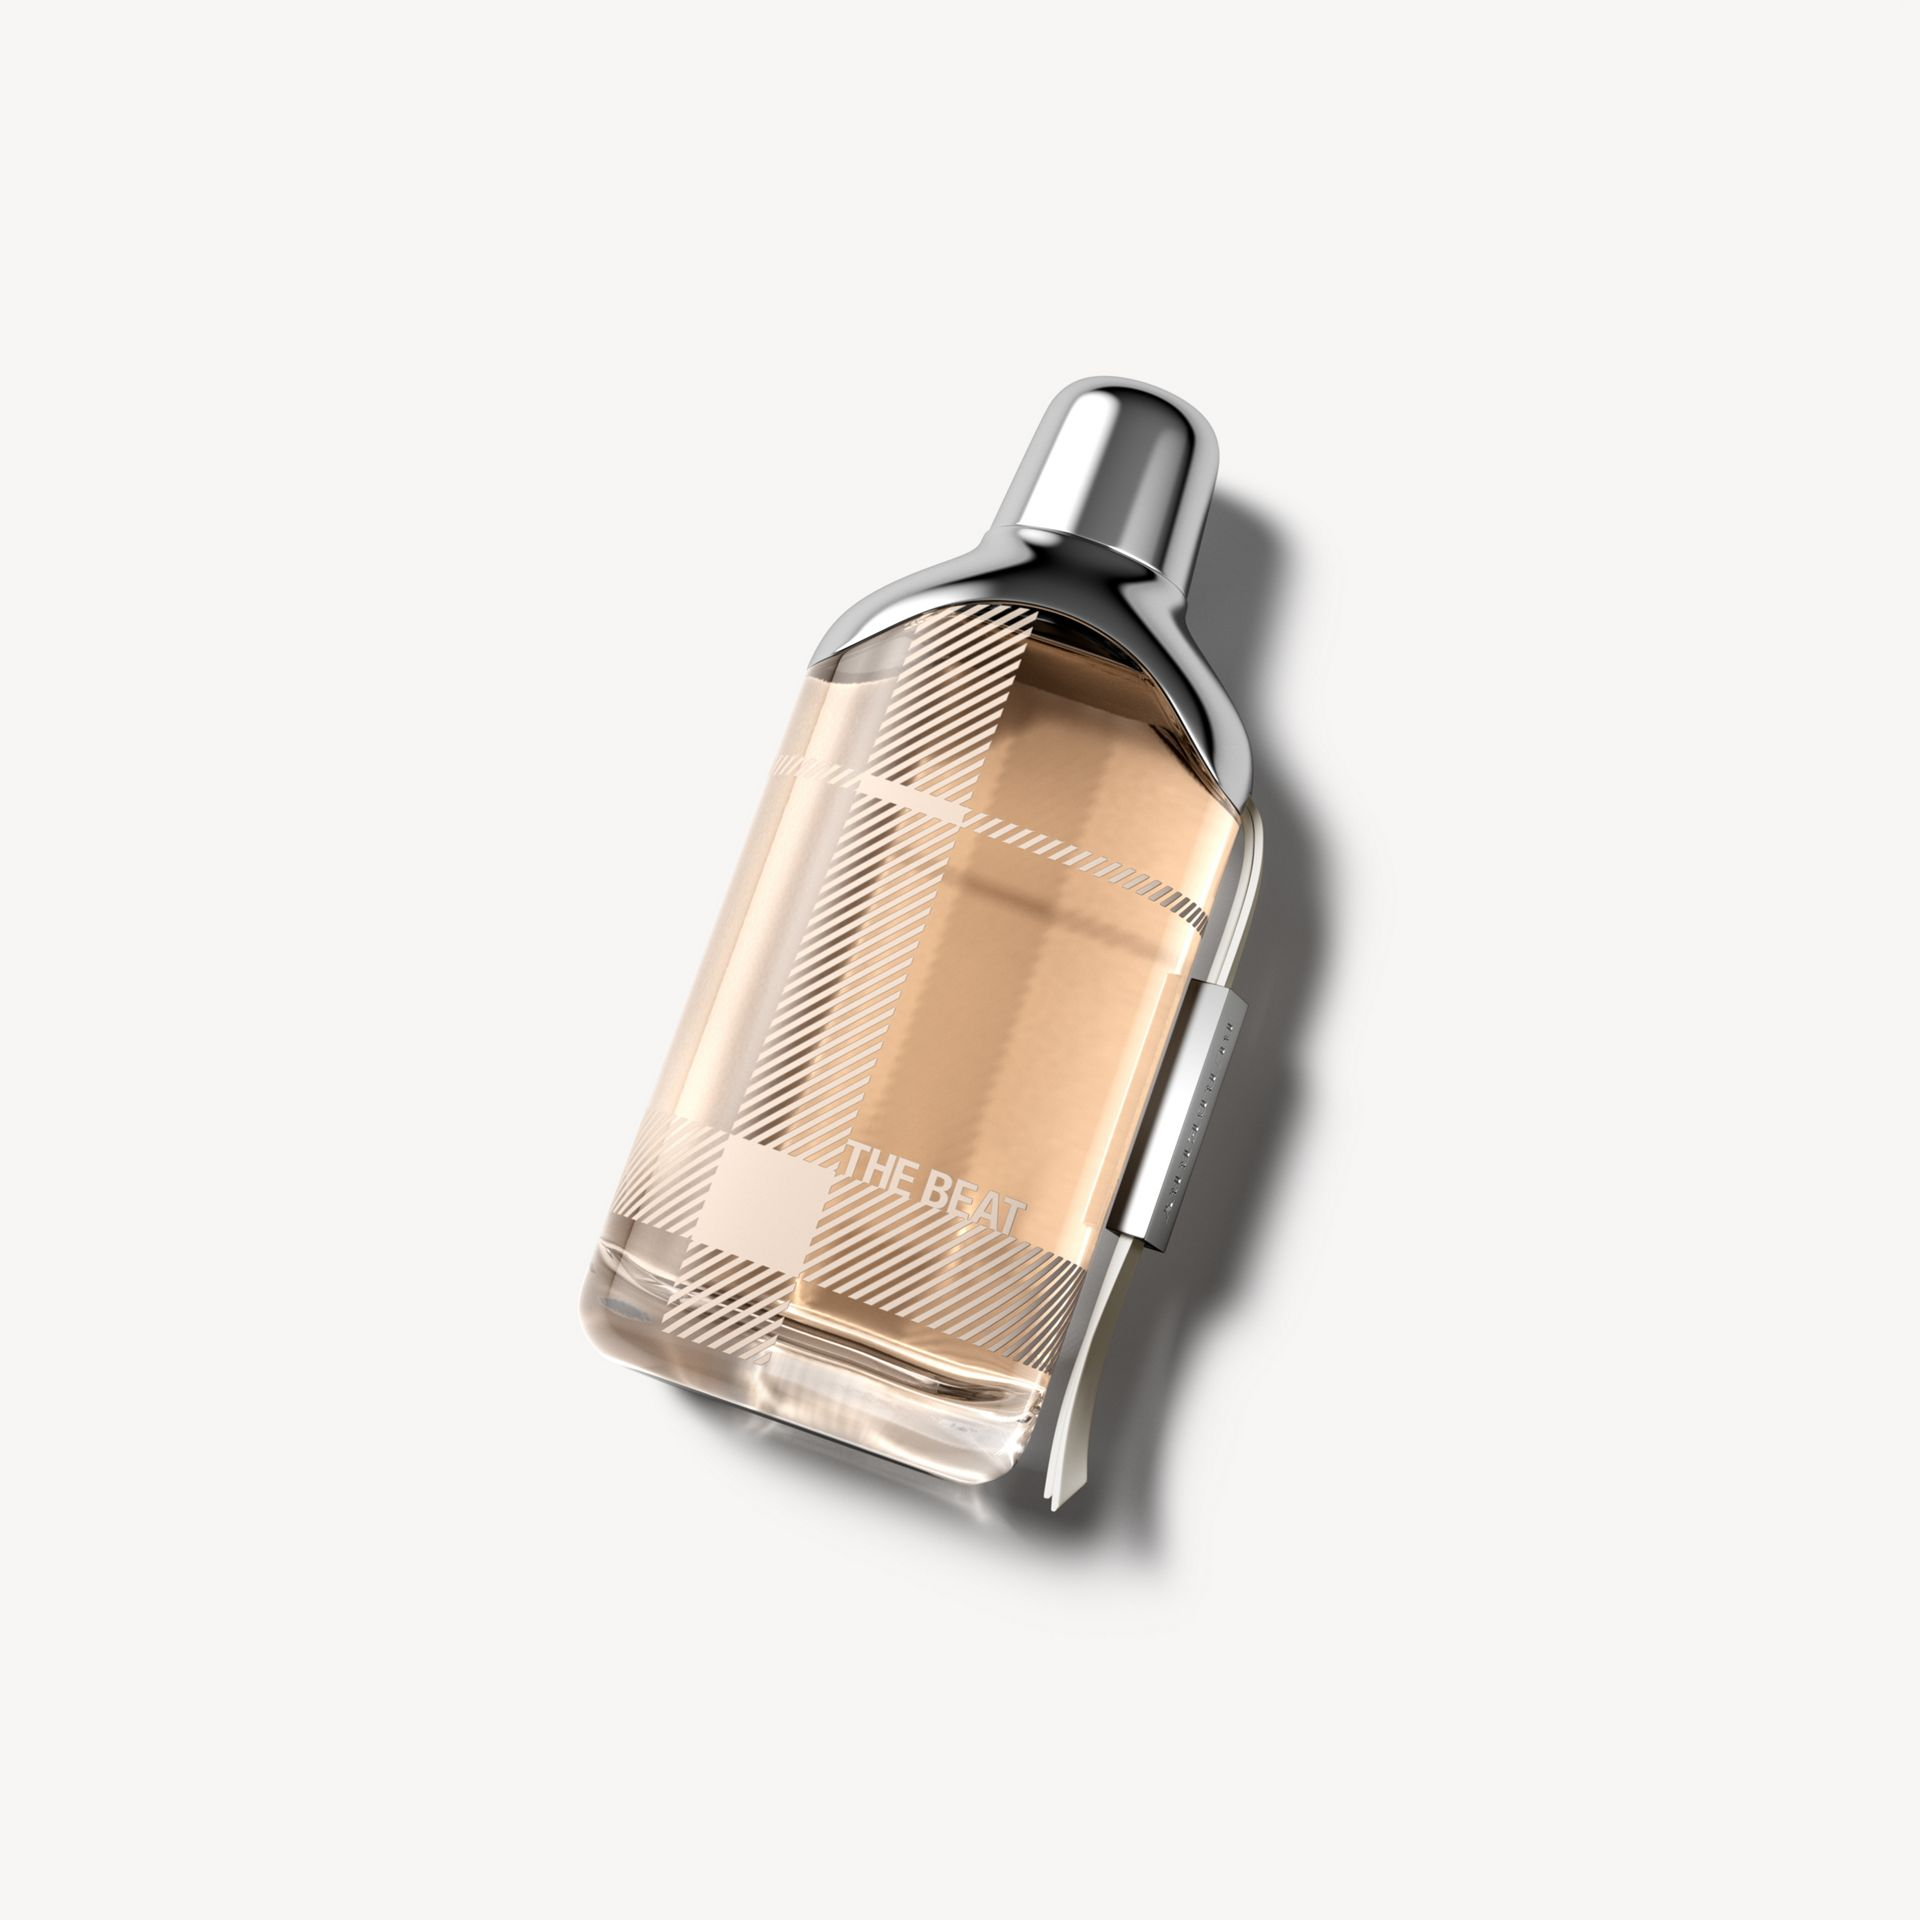 Burberry The Beat Eau de Parfum 75 ml - immagine della galleria 1